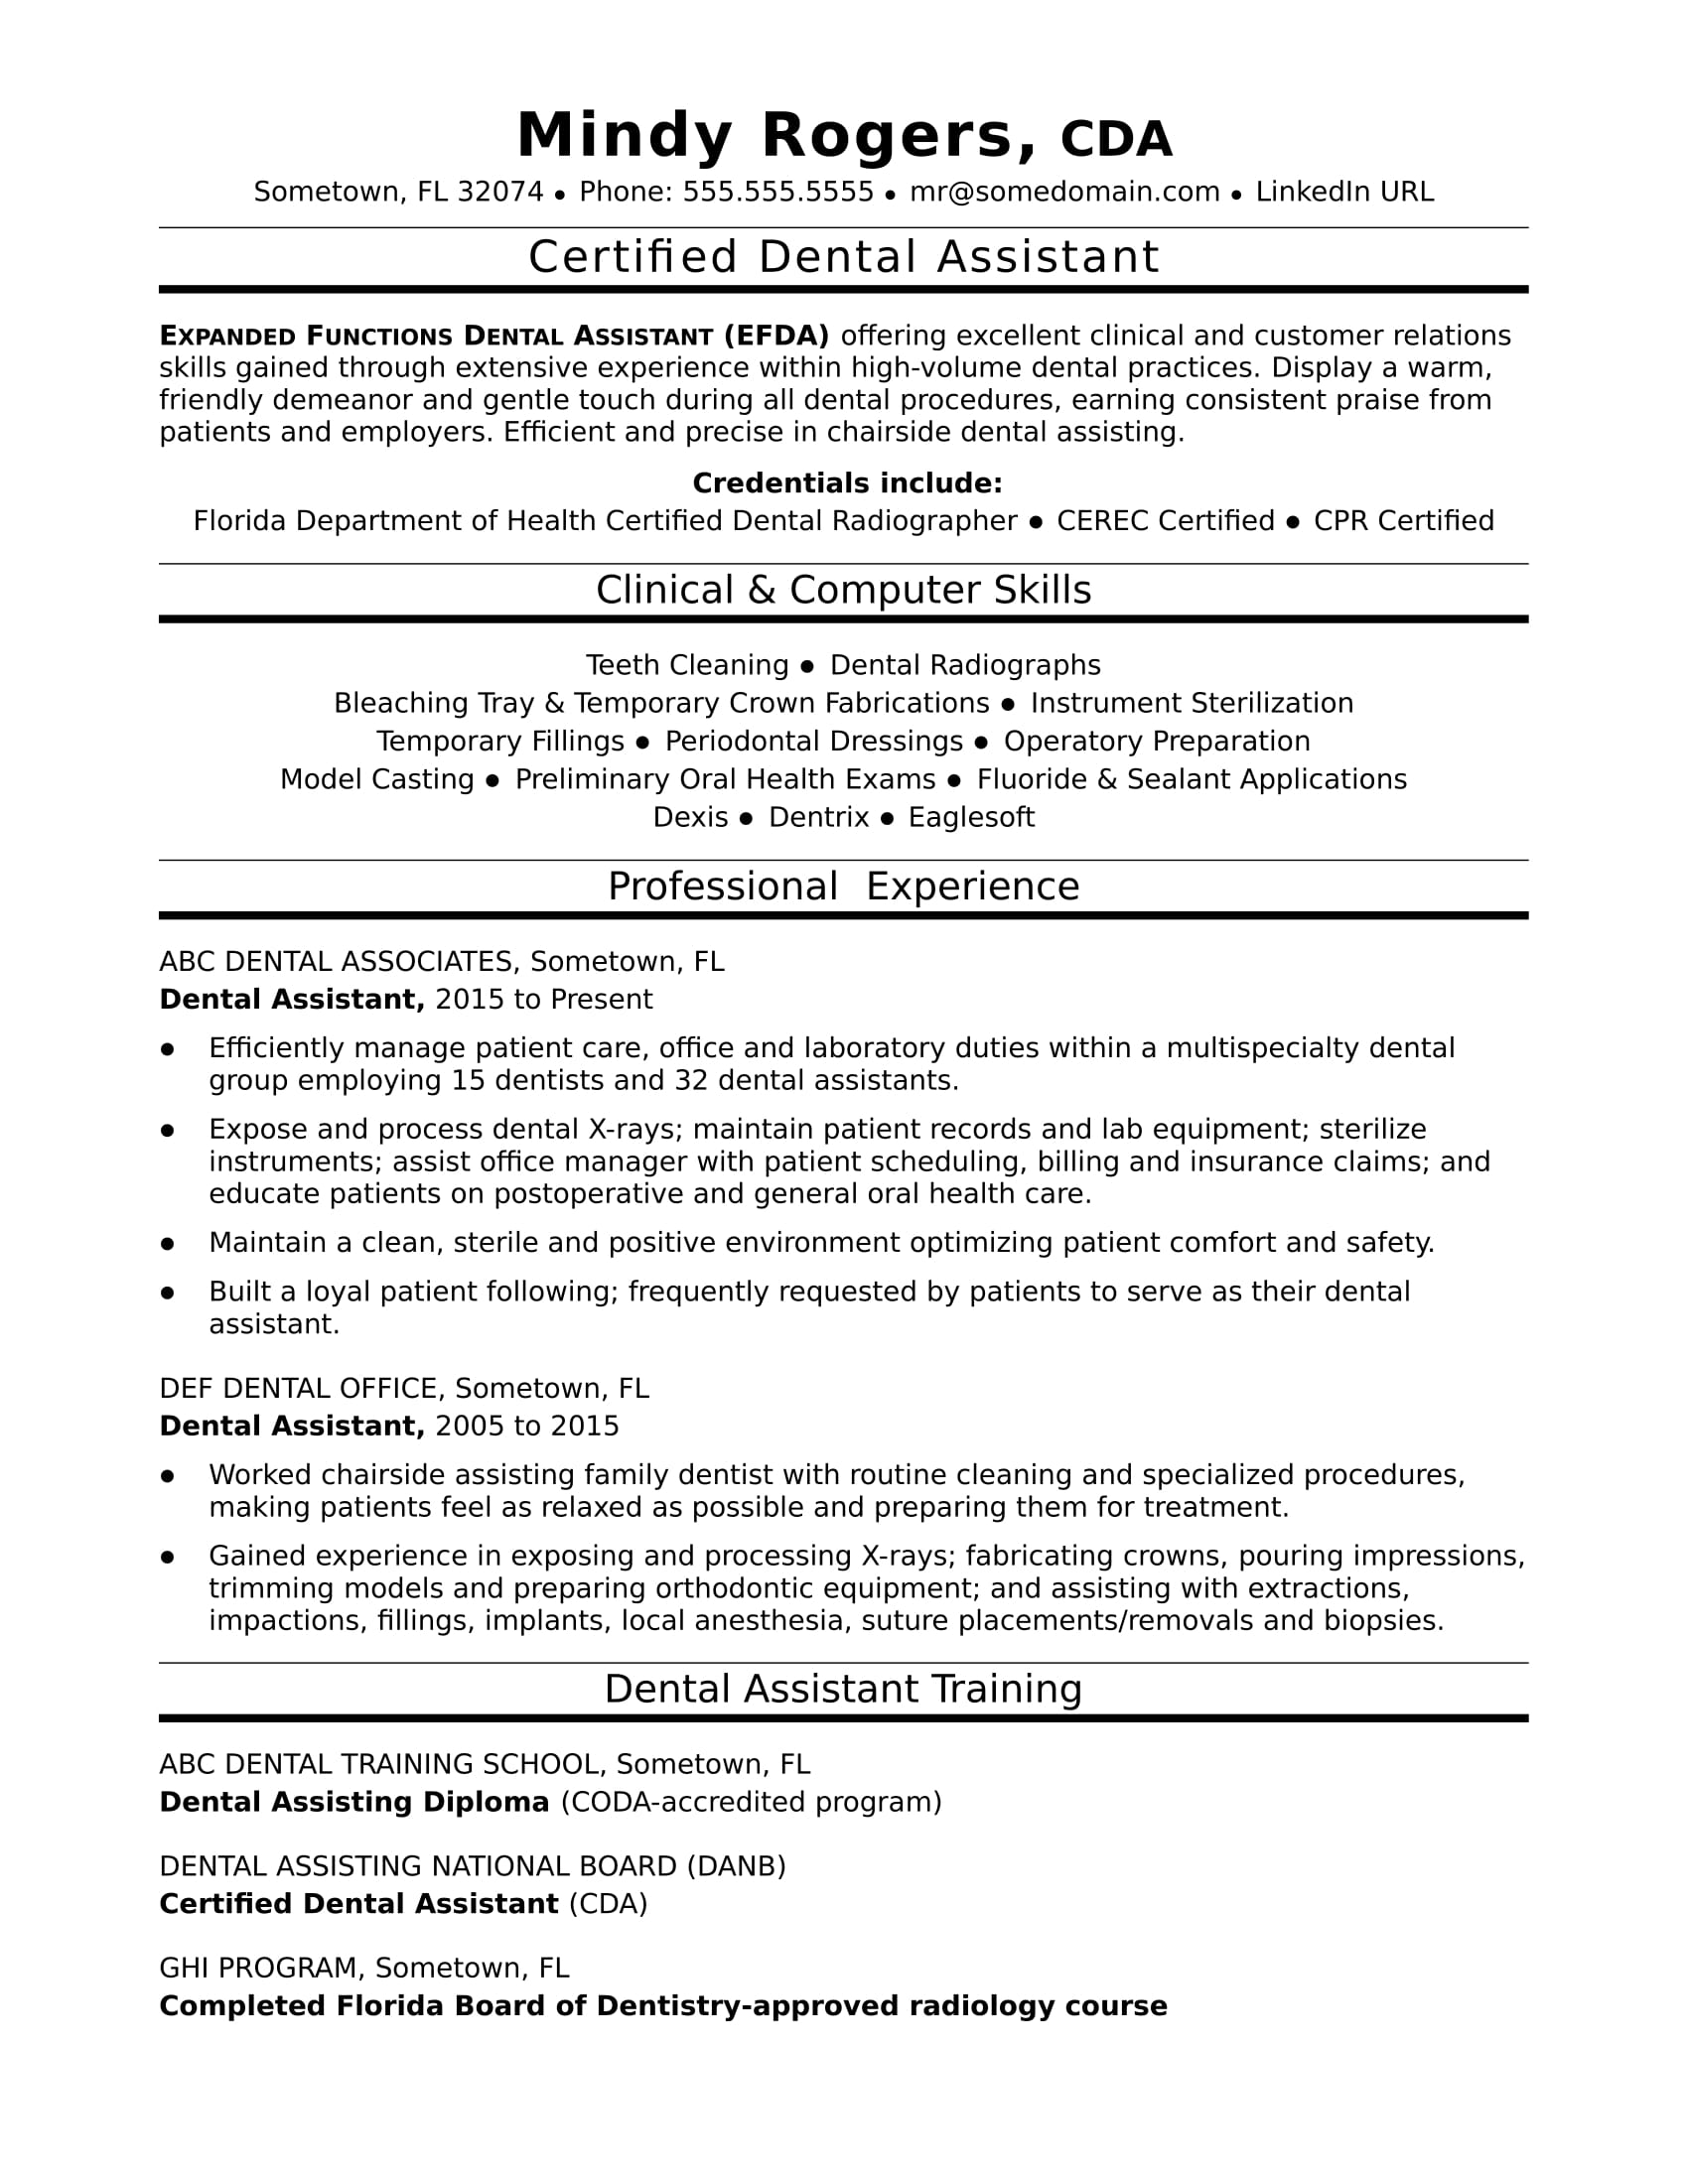 Elegant Dental Assistant Resume Sample In Resumes For Dental Assistants